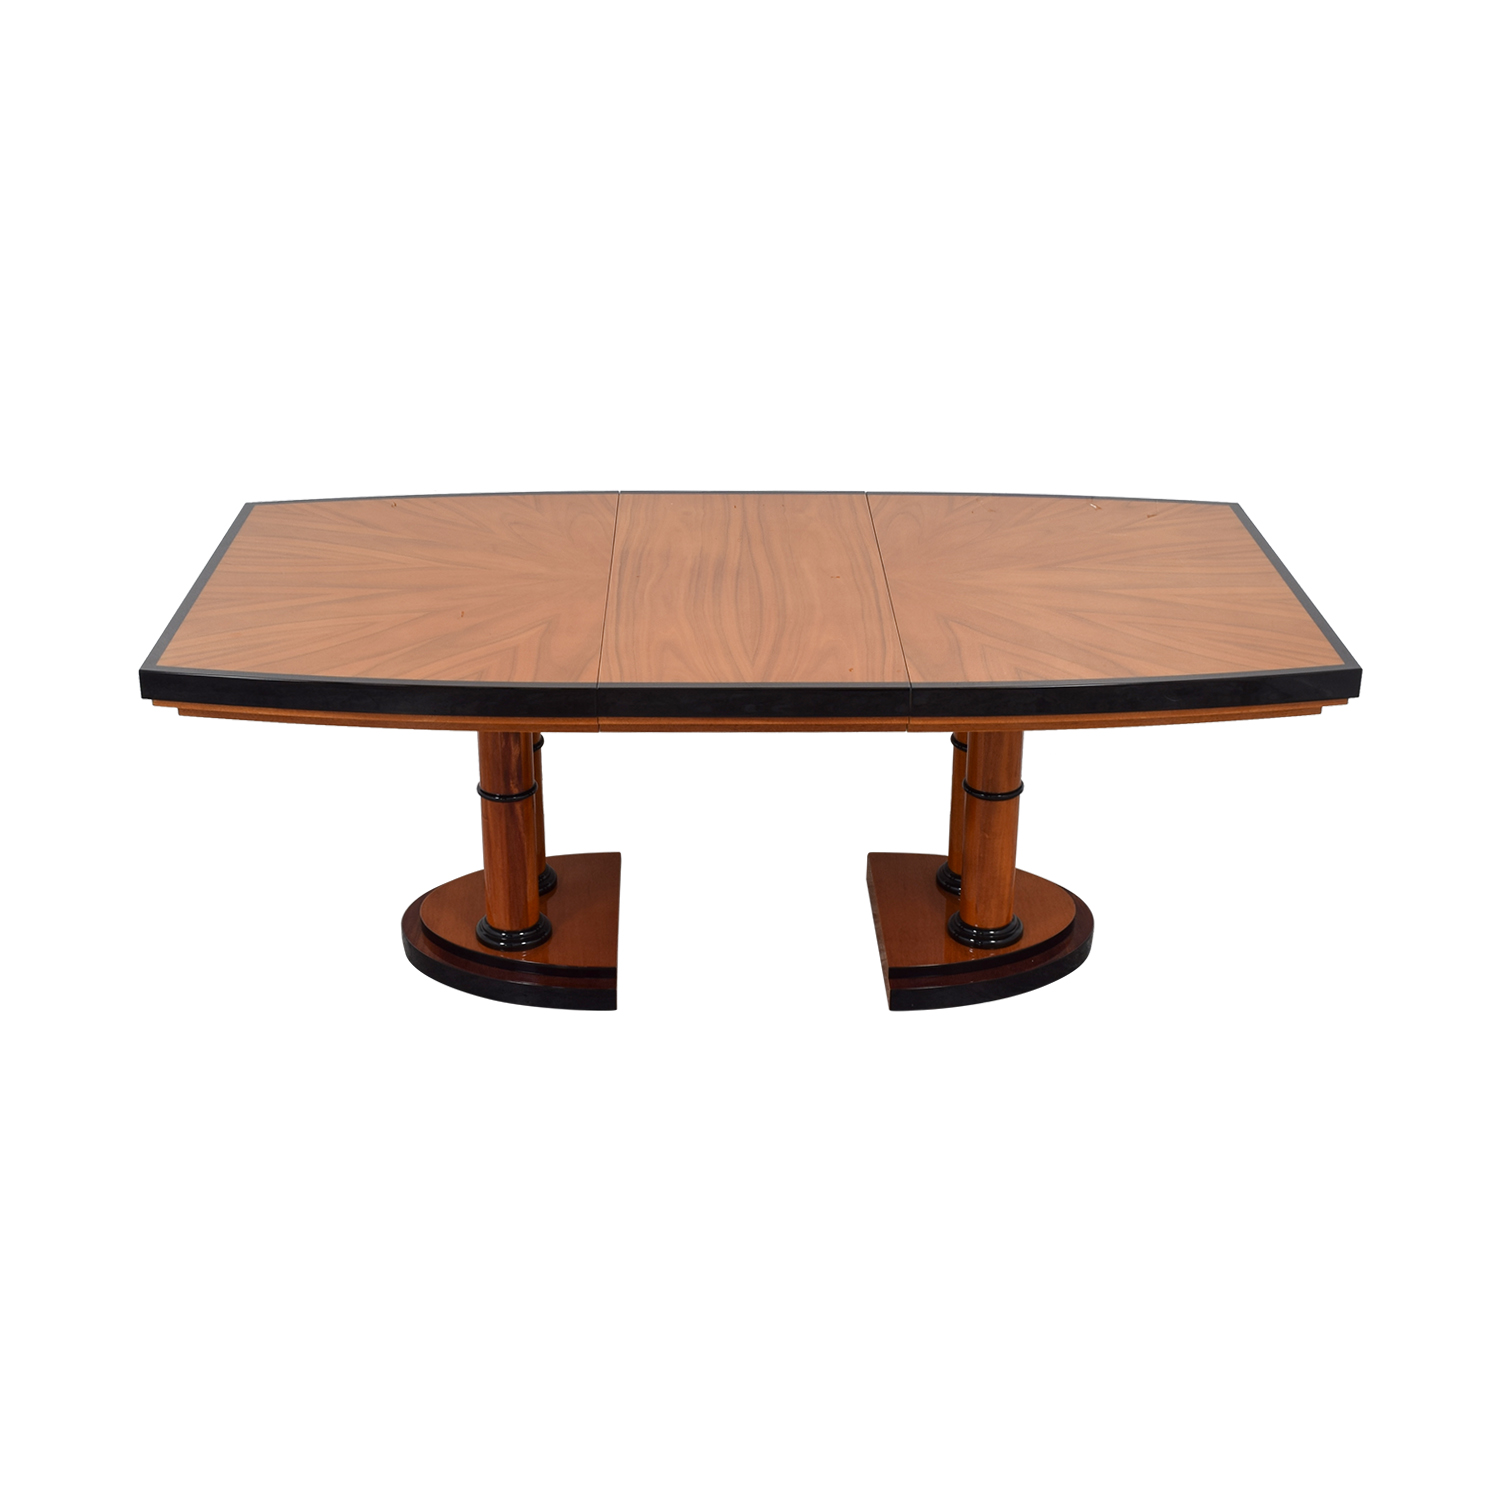 Manhattan Cabinetry Manhattan Cabinetry Custom Expandable Dining Table second hand